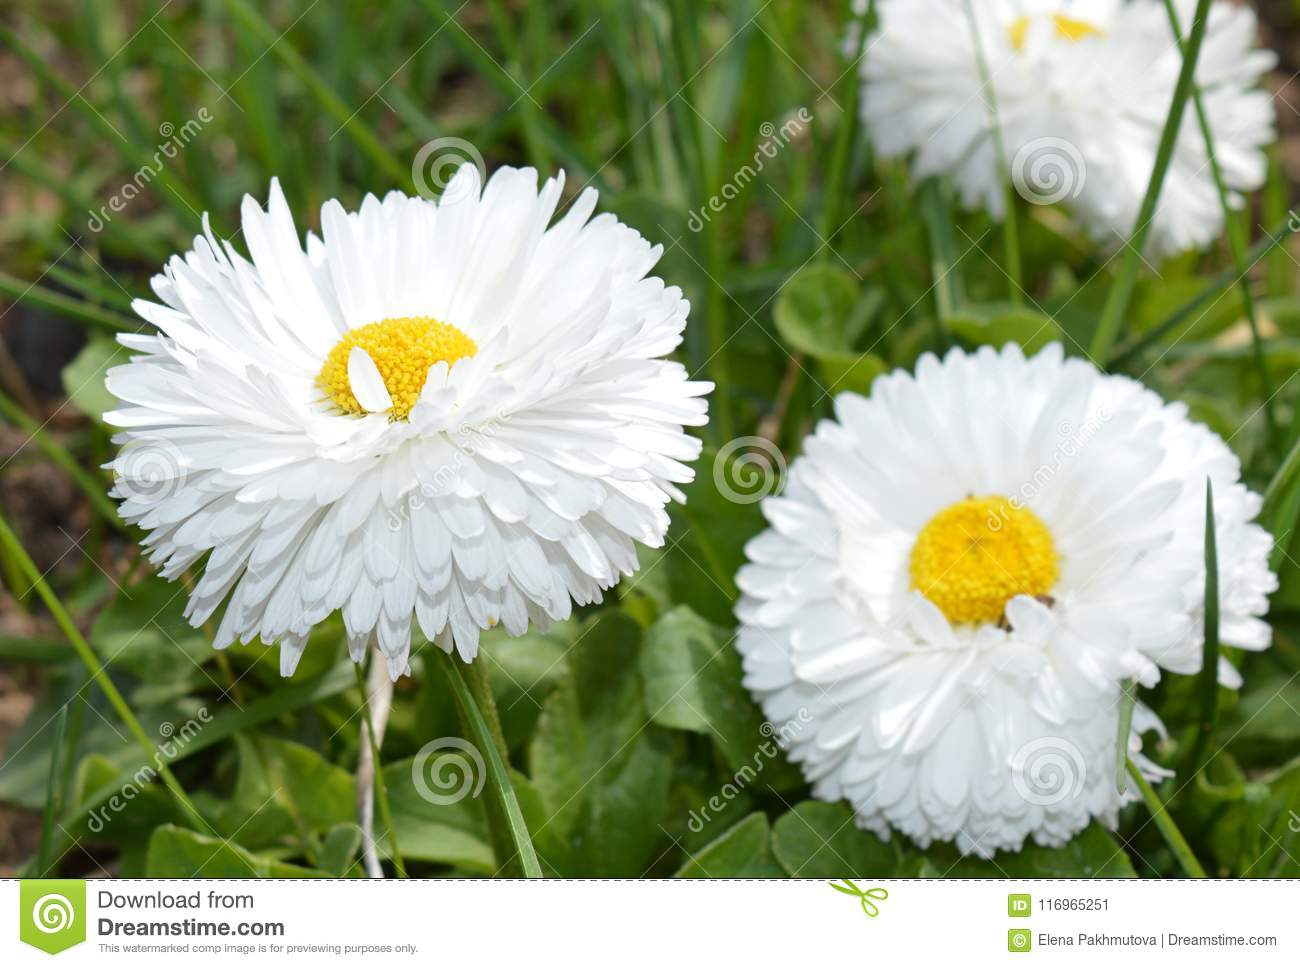 Flower Daisy White Nature Green Spring Plant Yellow Grass